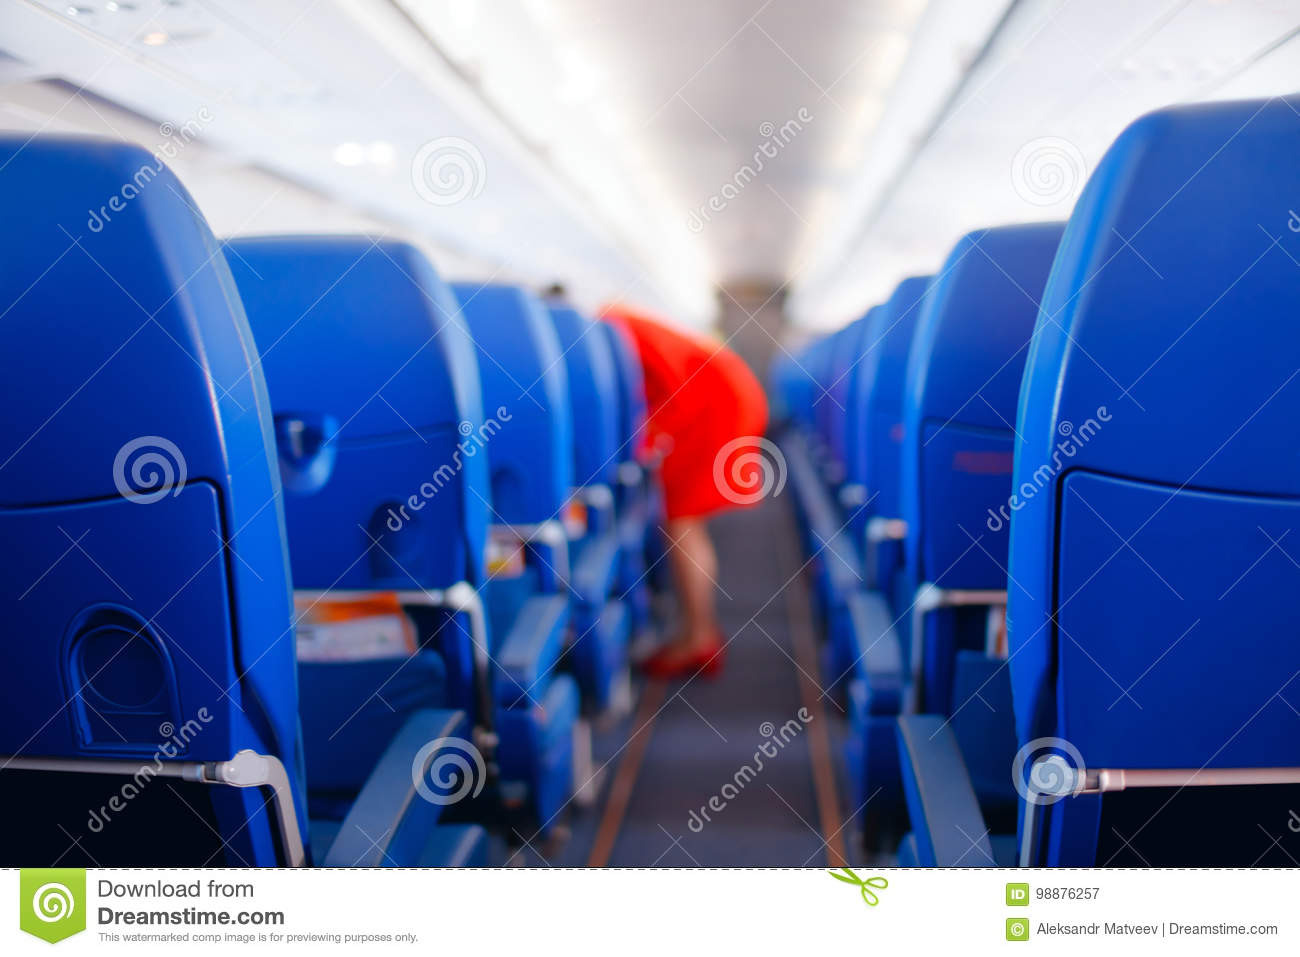 Passenger seat, Interior of airplane with passengers sitting on seats and stewardess walking the aisle in background. stewardess s